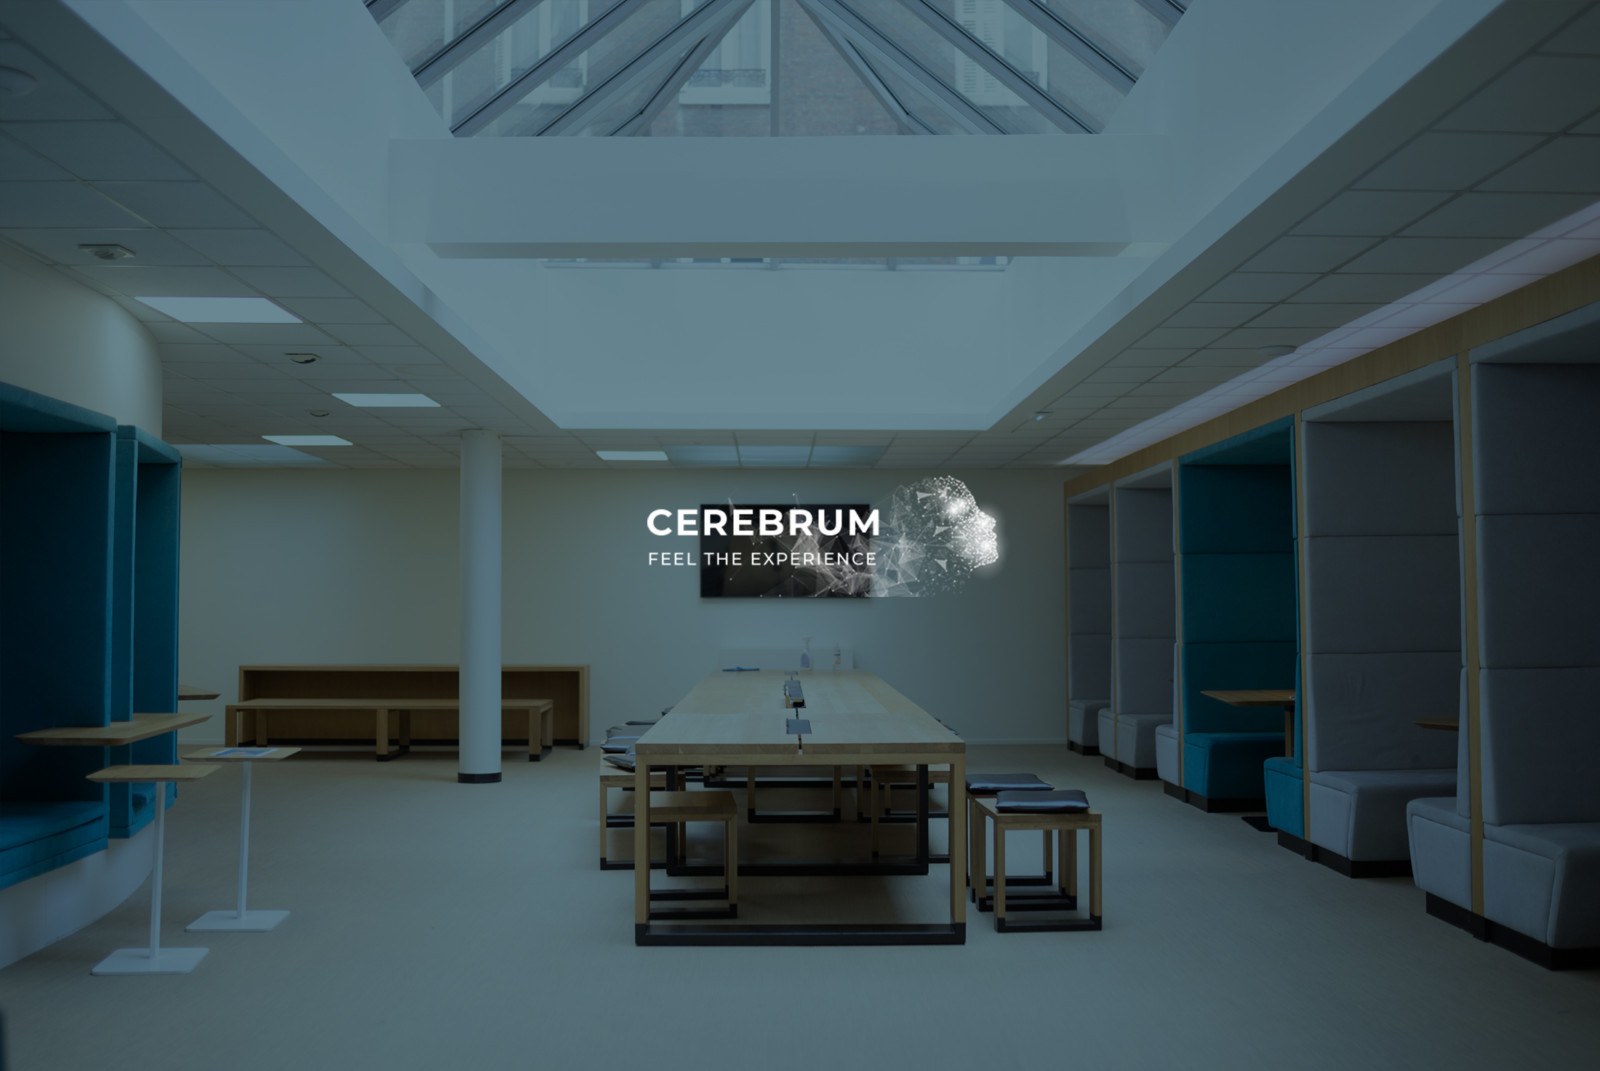 Cerebrum - Feel the experience